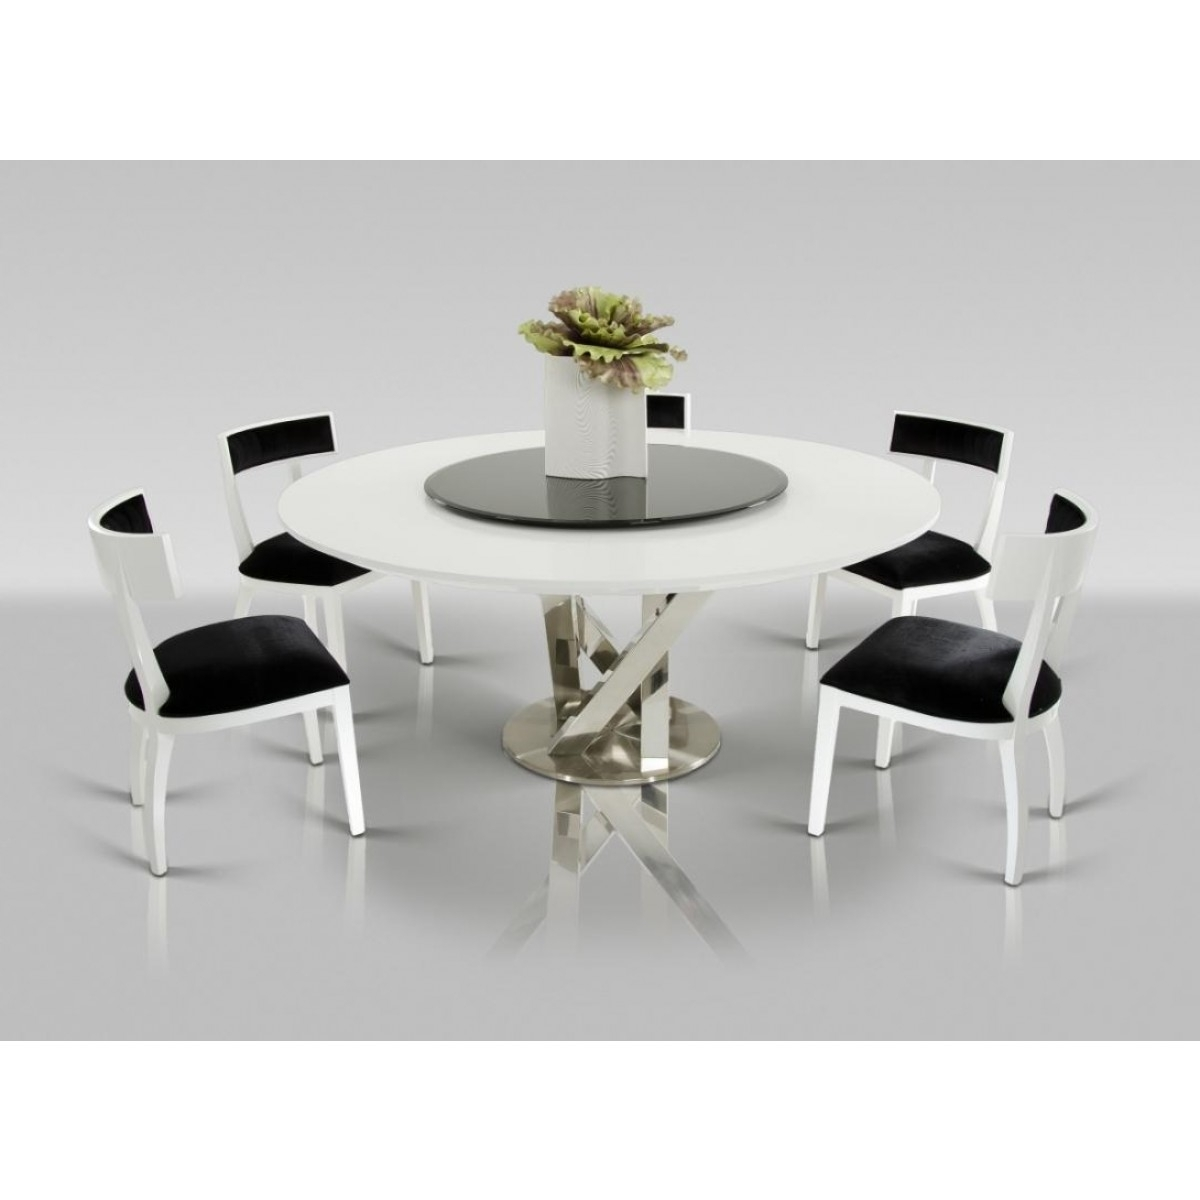 Round White Dining Tables Intended For Recent Contemporary & Luxury Furniture; Living Room, Bedroom,la Furniture (View 20 of 25)